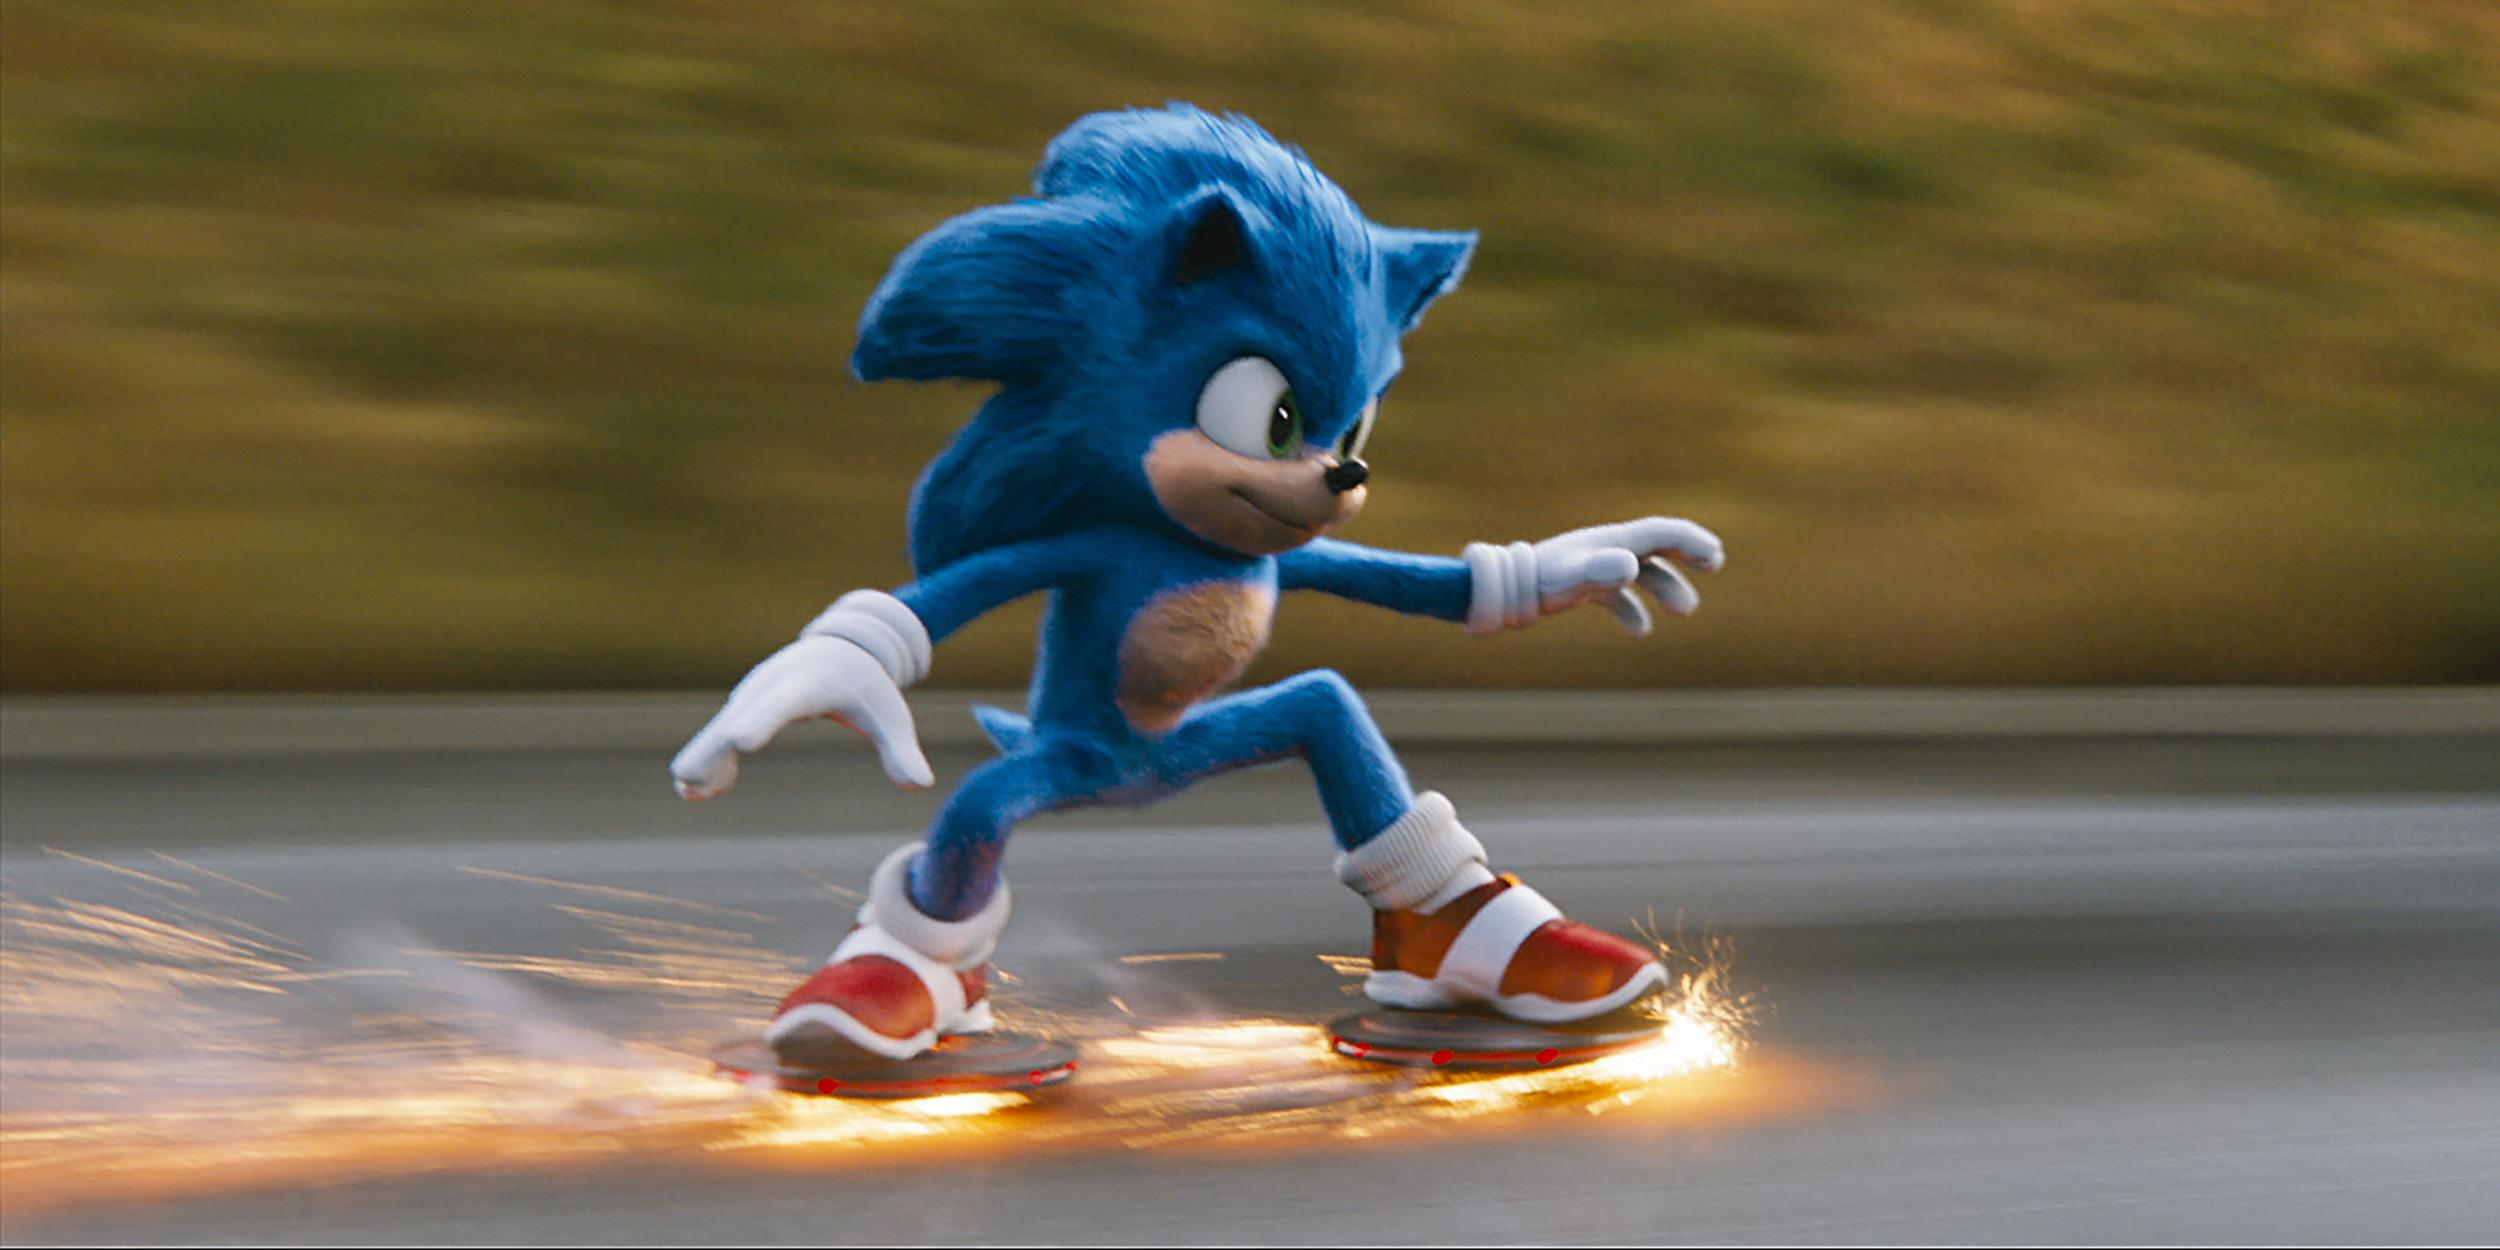 Sonic S Cgi Hedgehog Has Creepy Human Teeth But That S Not The Worst Part